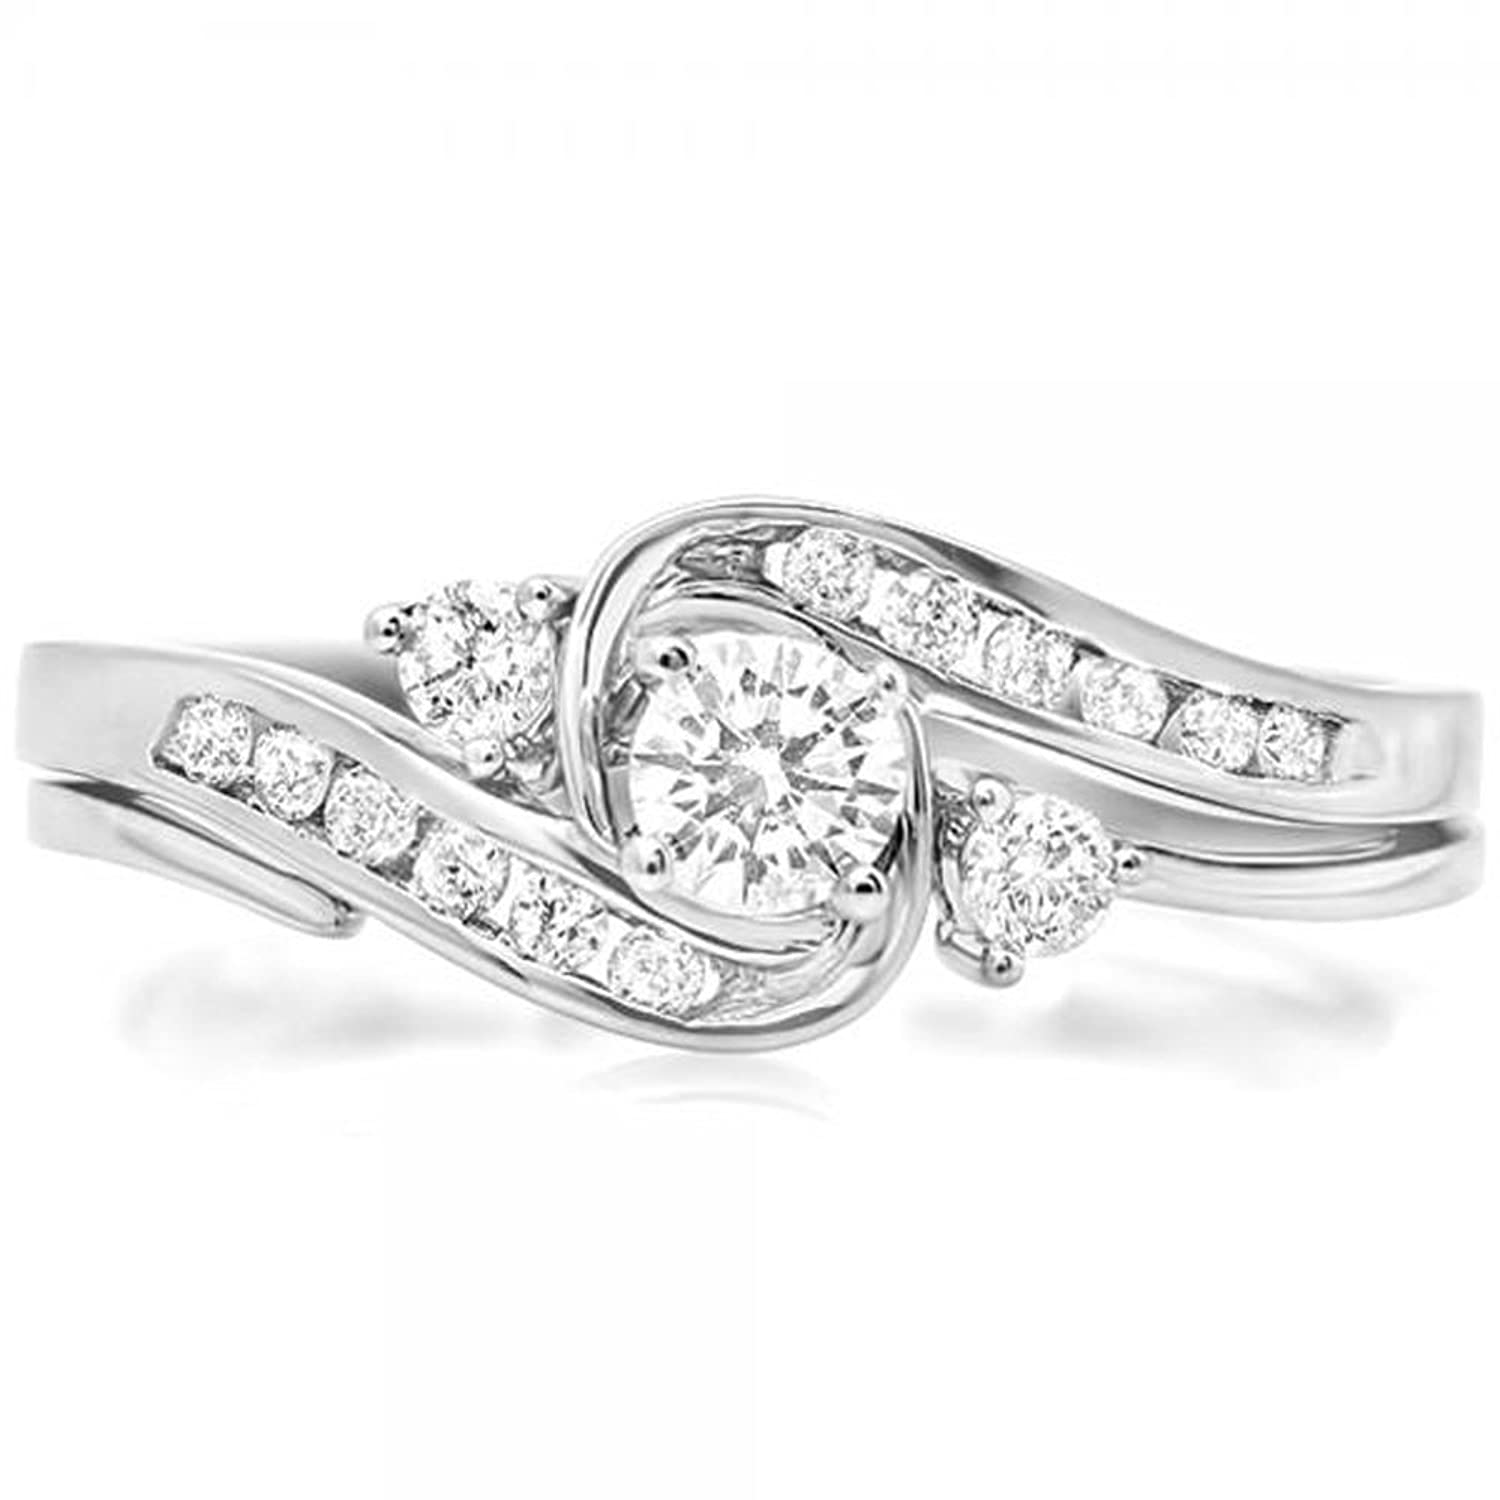 0.50 Carat (ctw) 10K White Gold Round Diamond Ladies Swirl Bridal Engagement Ring Set 1/2 CT